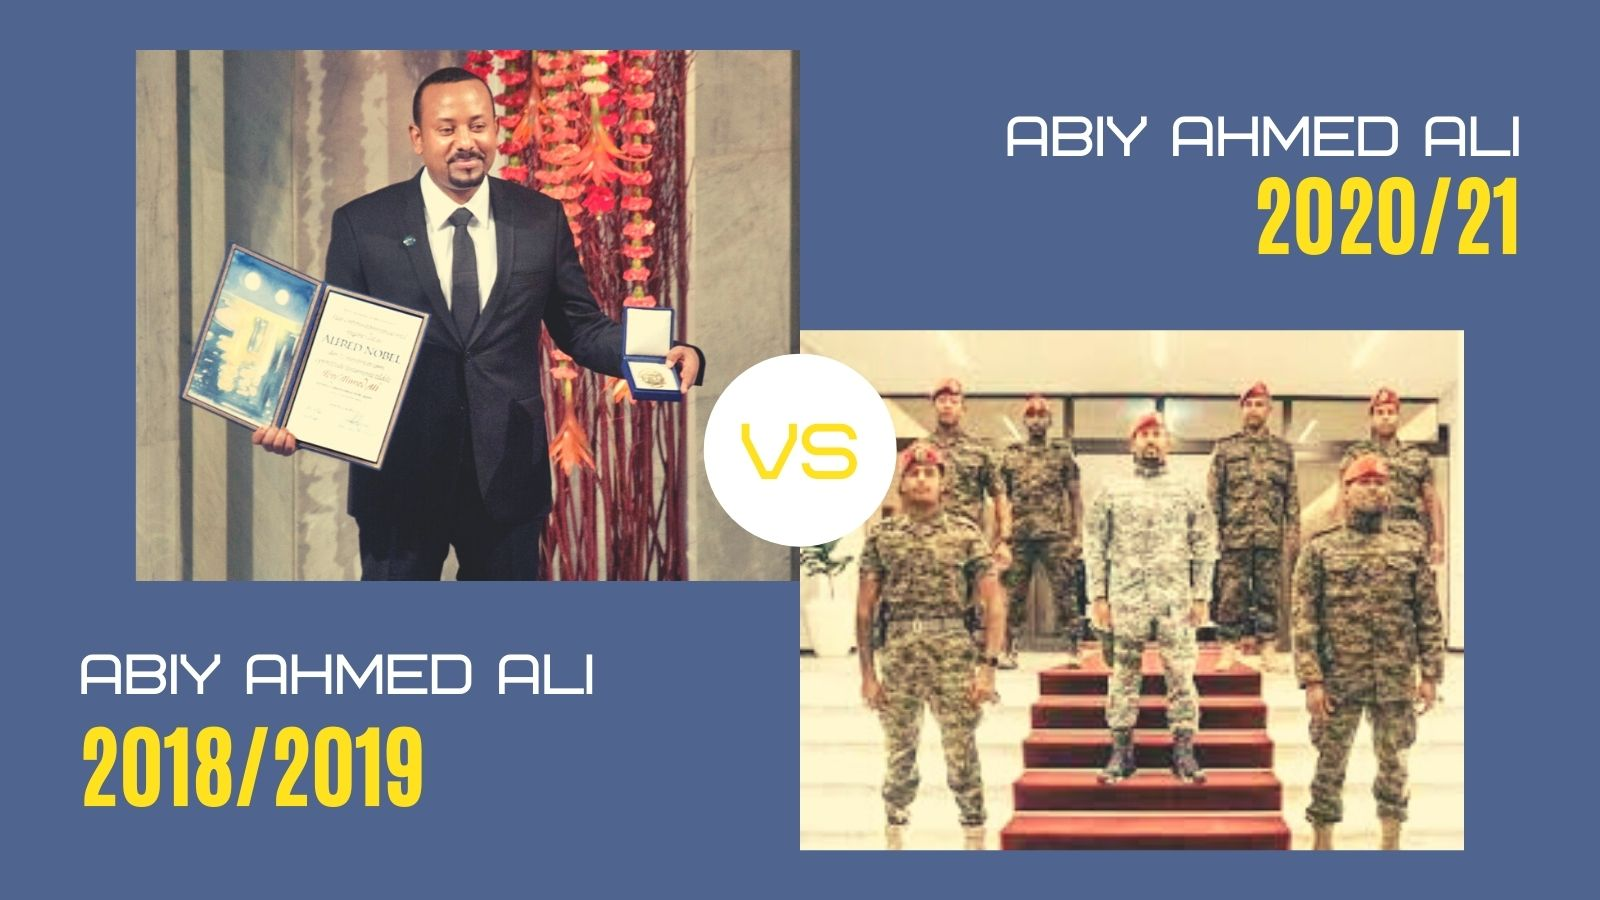 Your Words Not Mine: A Message to PM Abiy in His Own Words